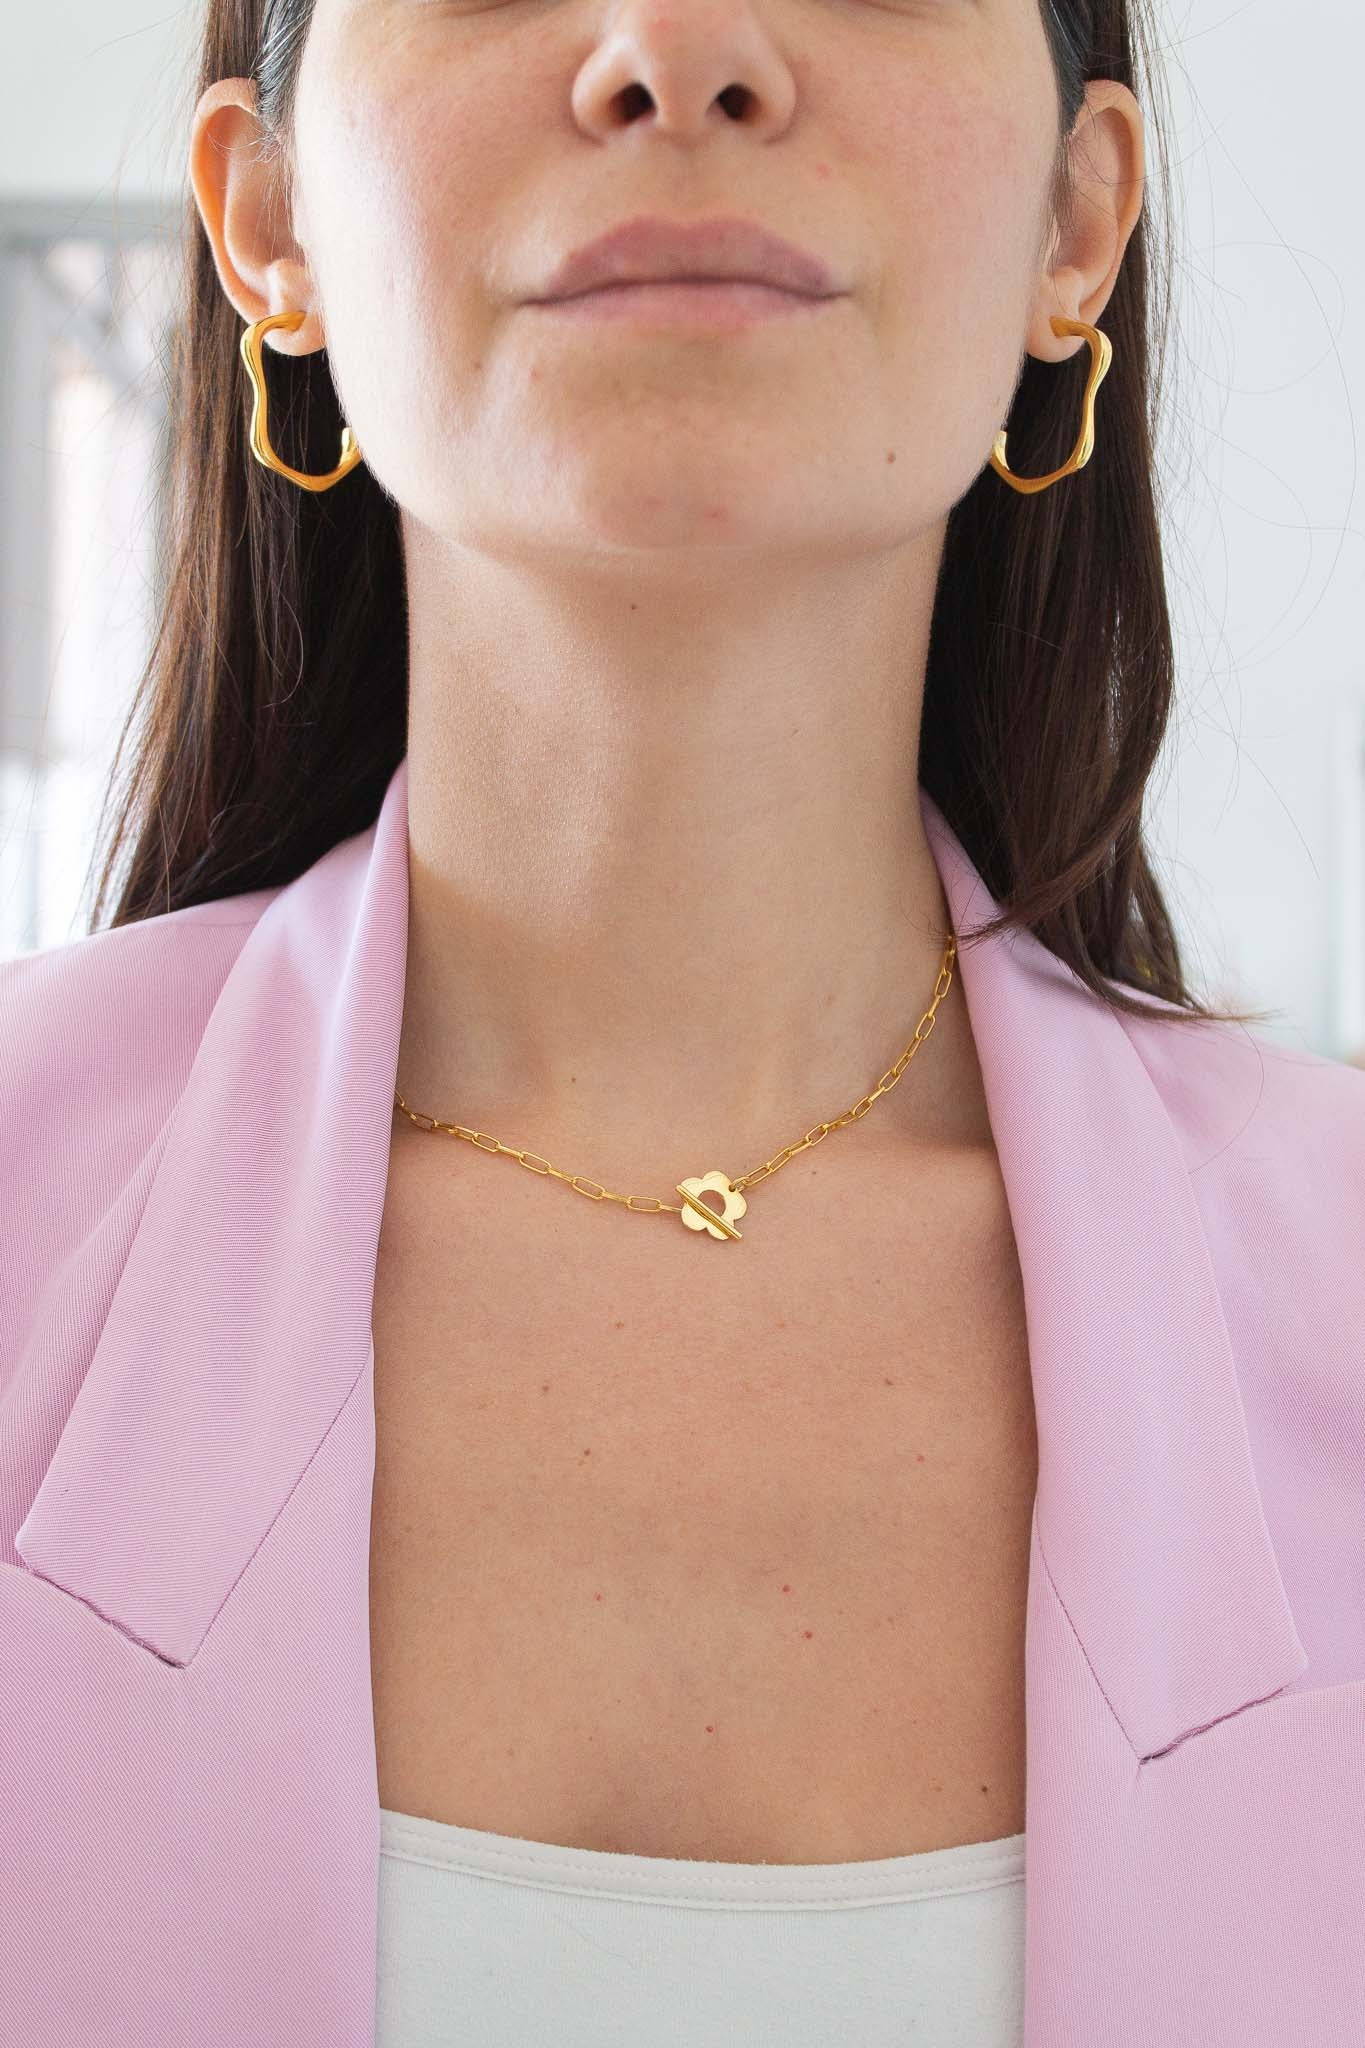 How to style your necklace